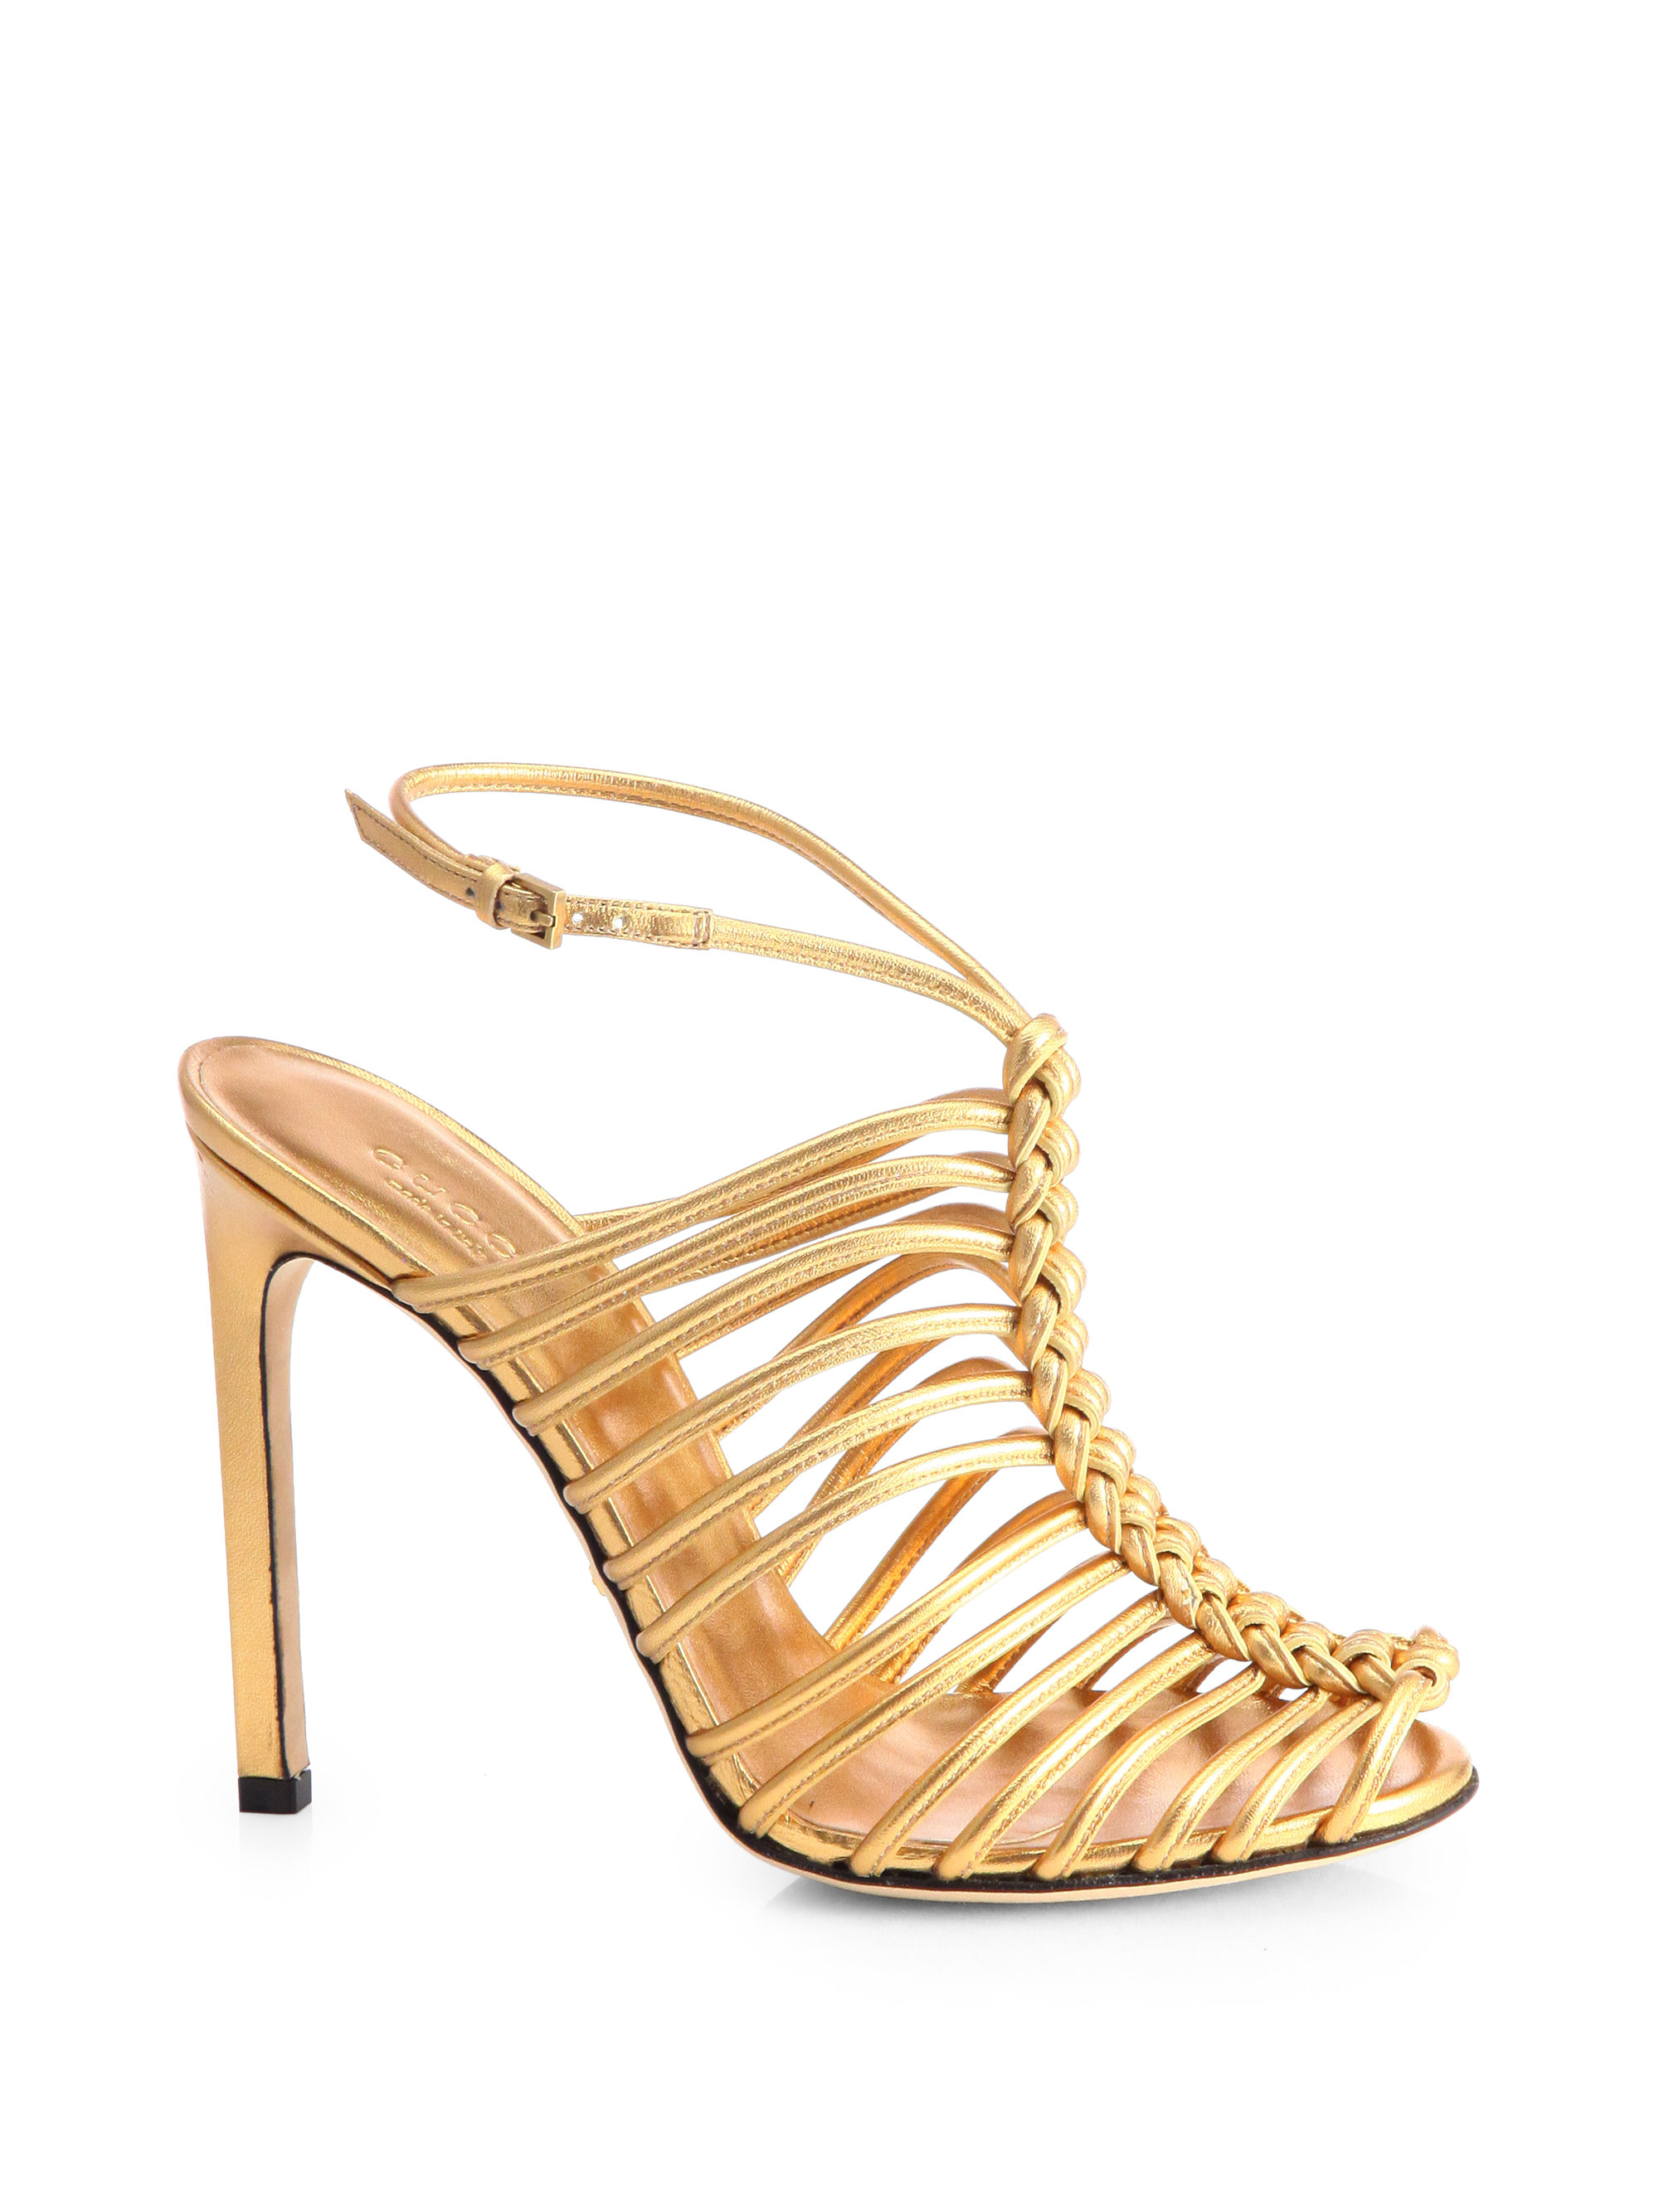 Gucci Strappy Knotted Sandals In Gold Lyst